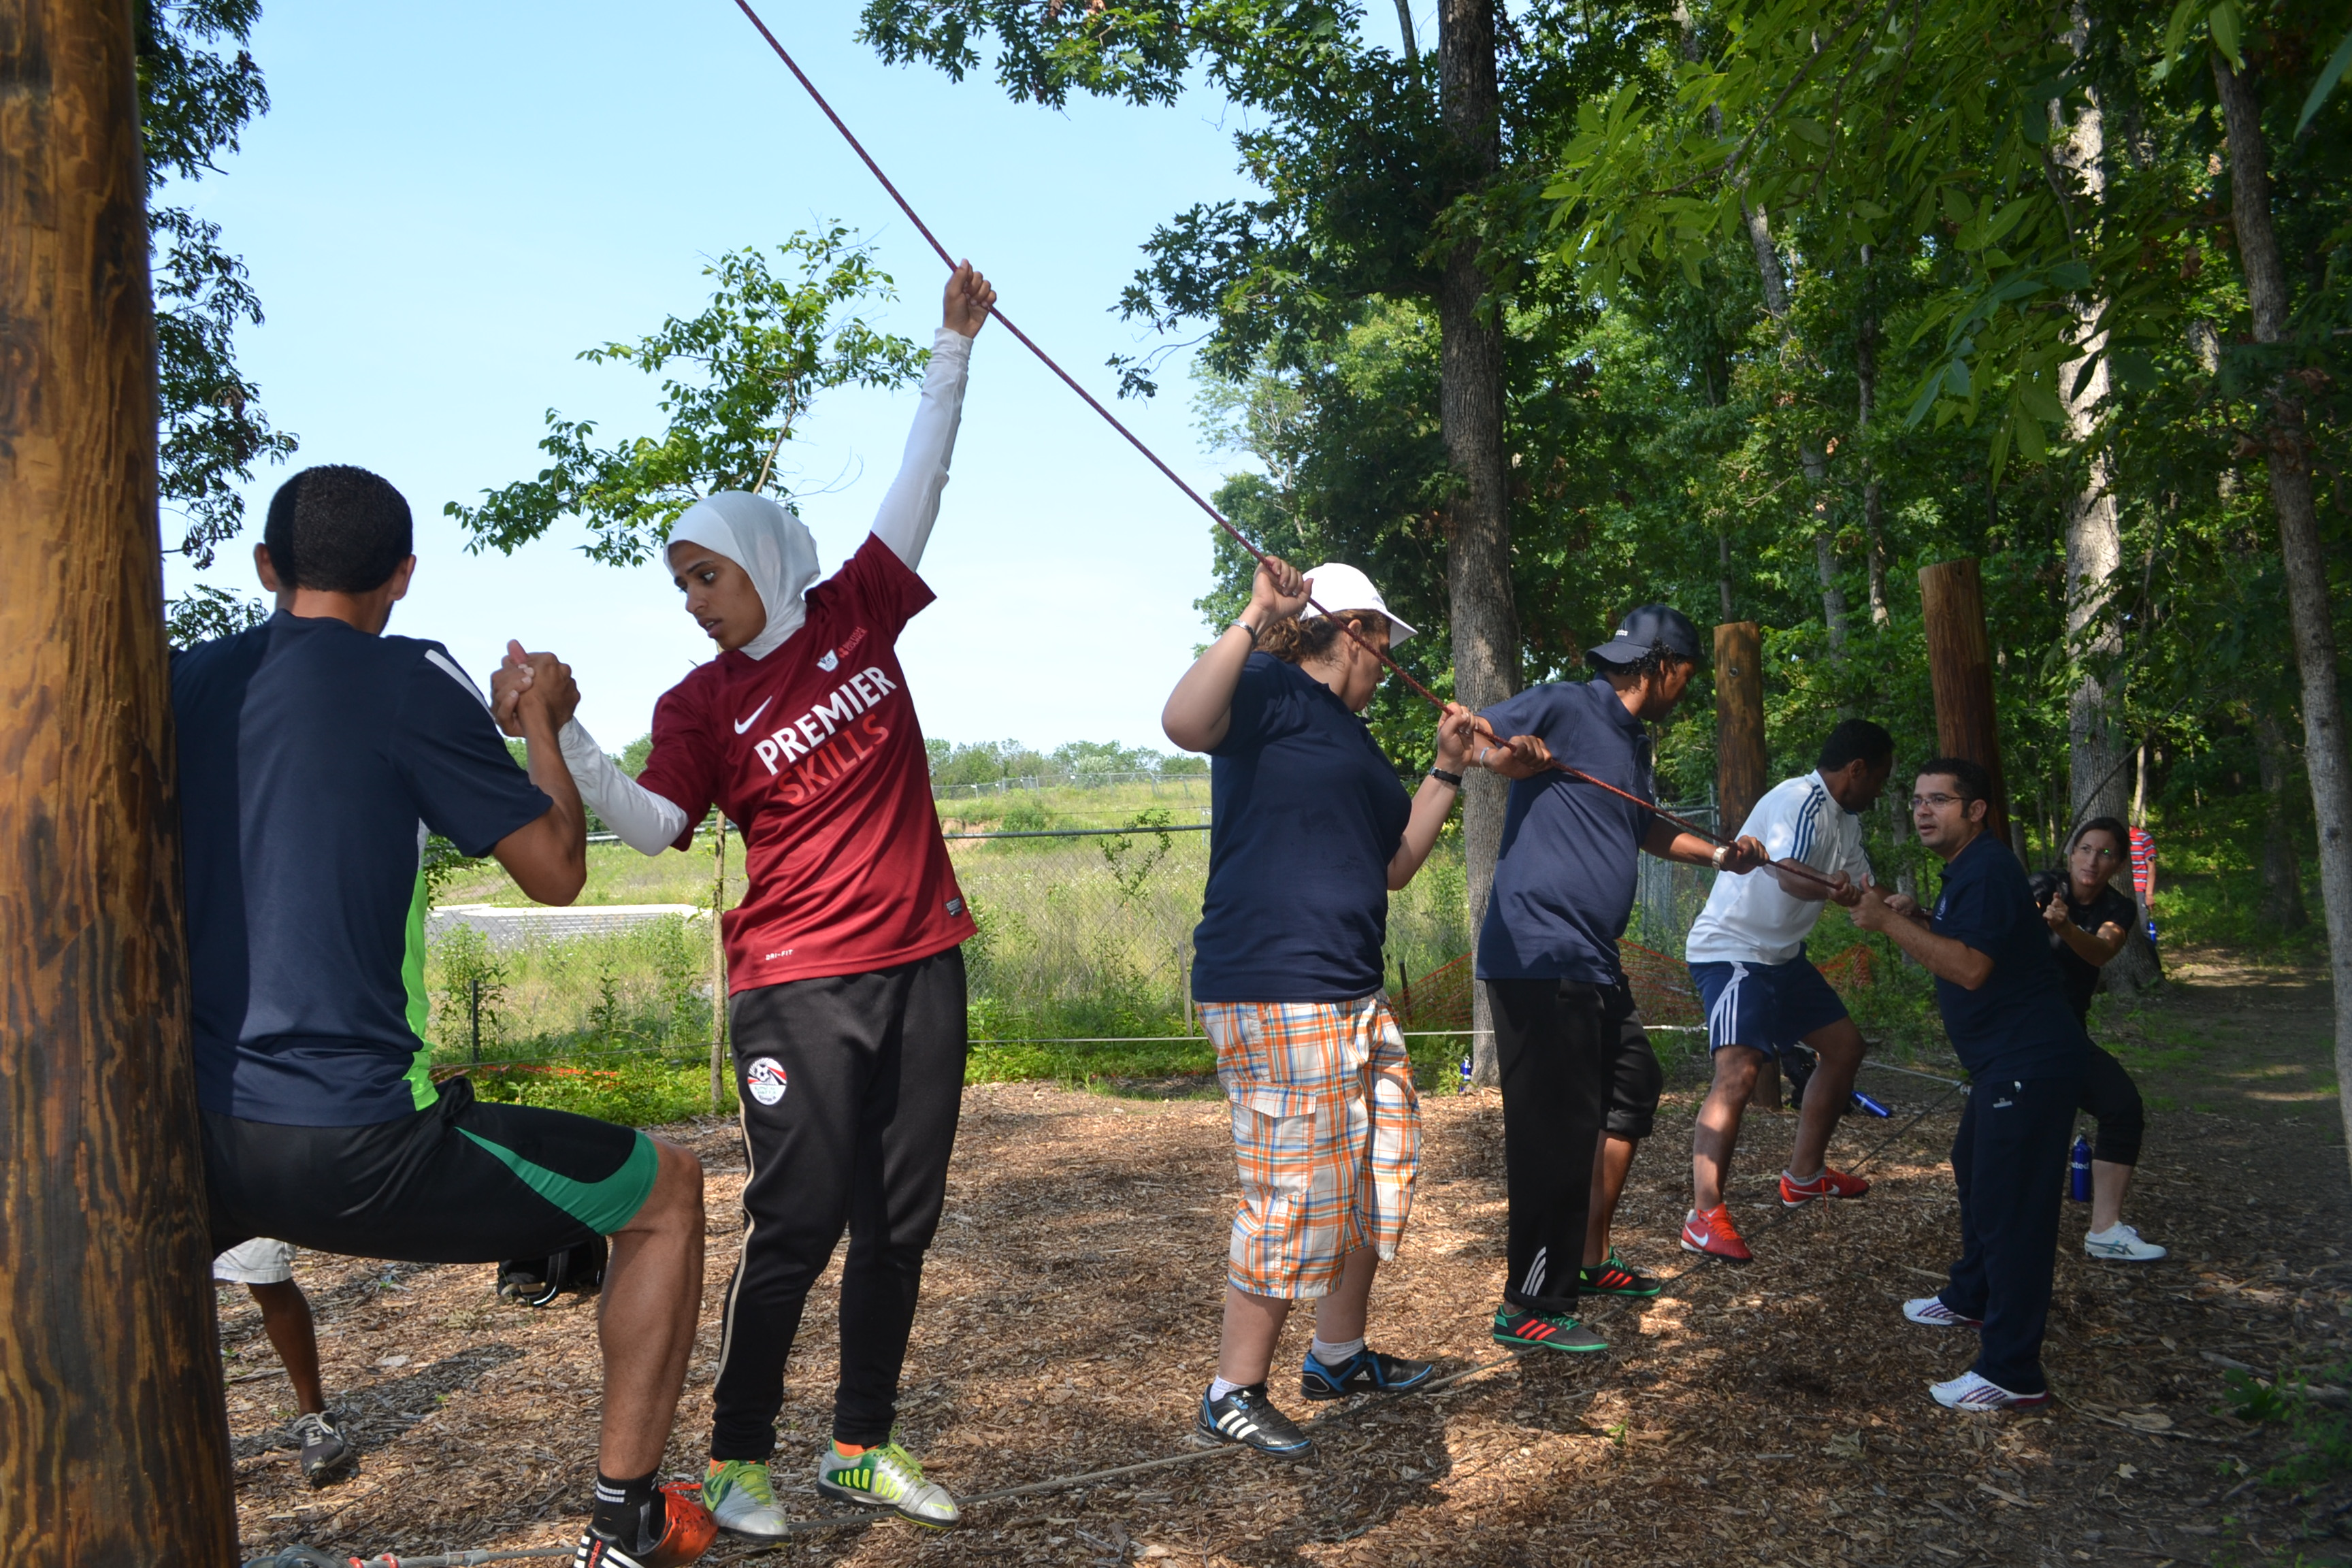 NEA participants worked together to accomplish different challenges at The Edge ropes course.